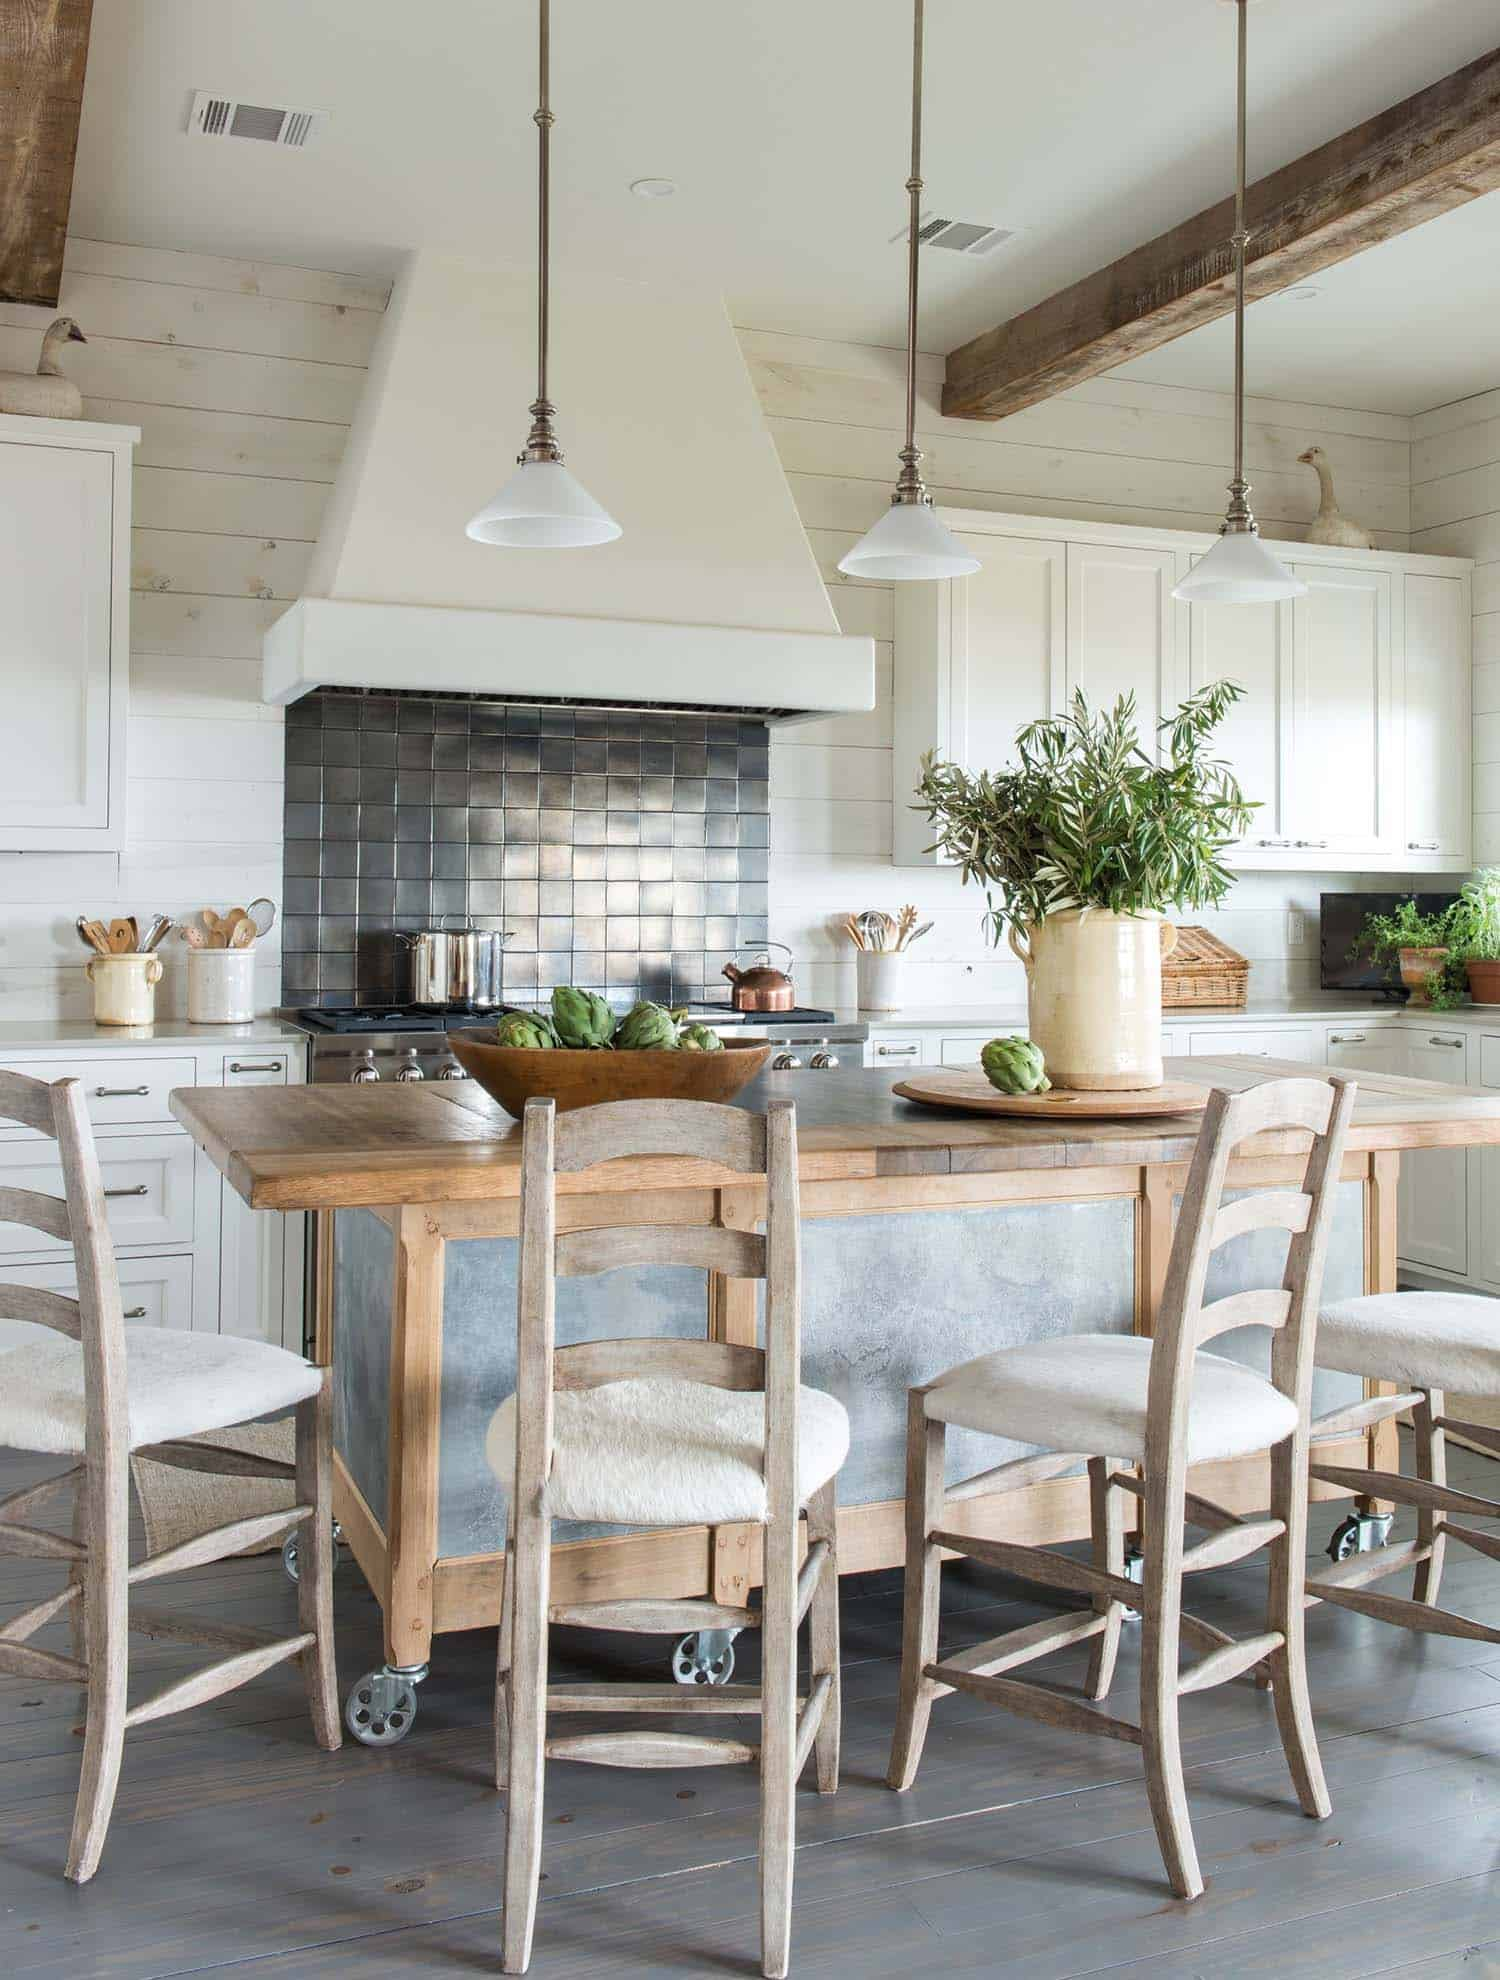 Beach House Design Ginger Barber 03 1 Kindesign